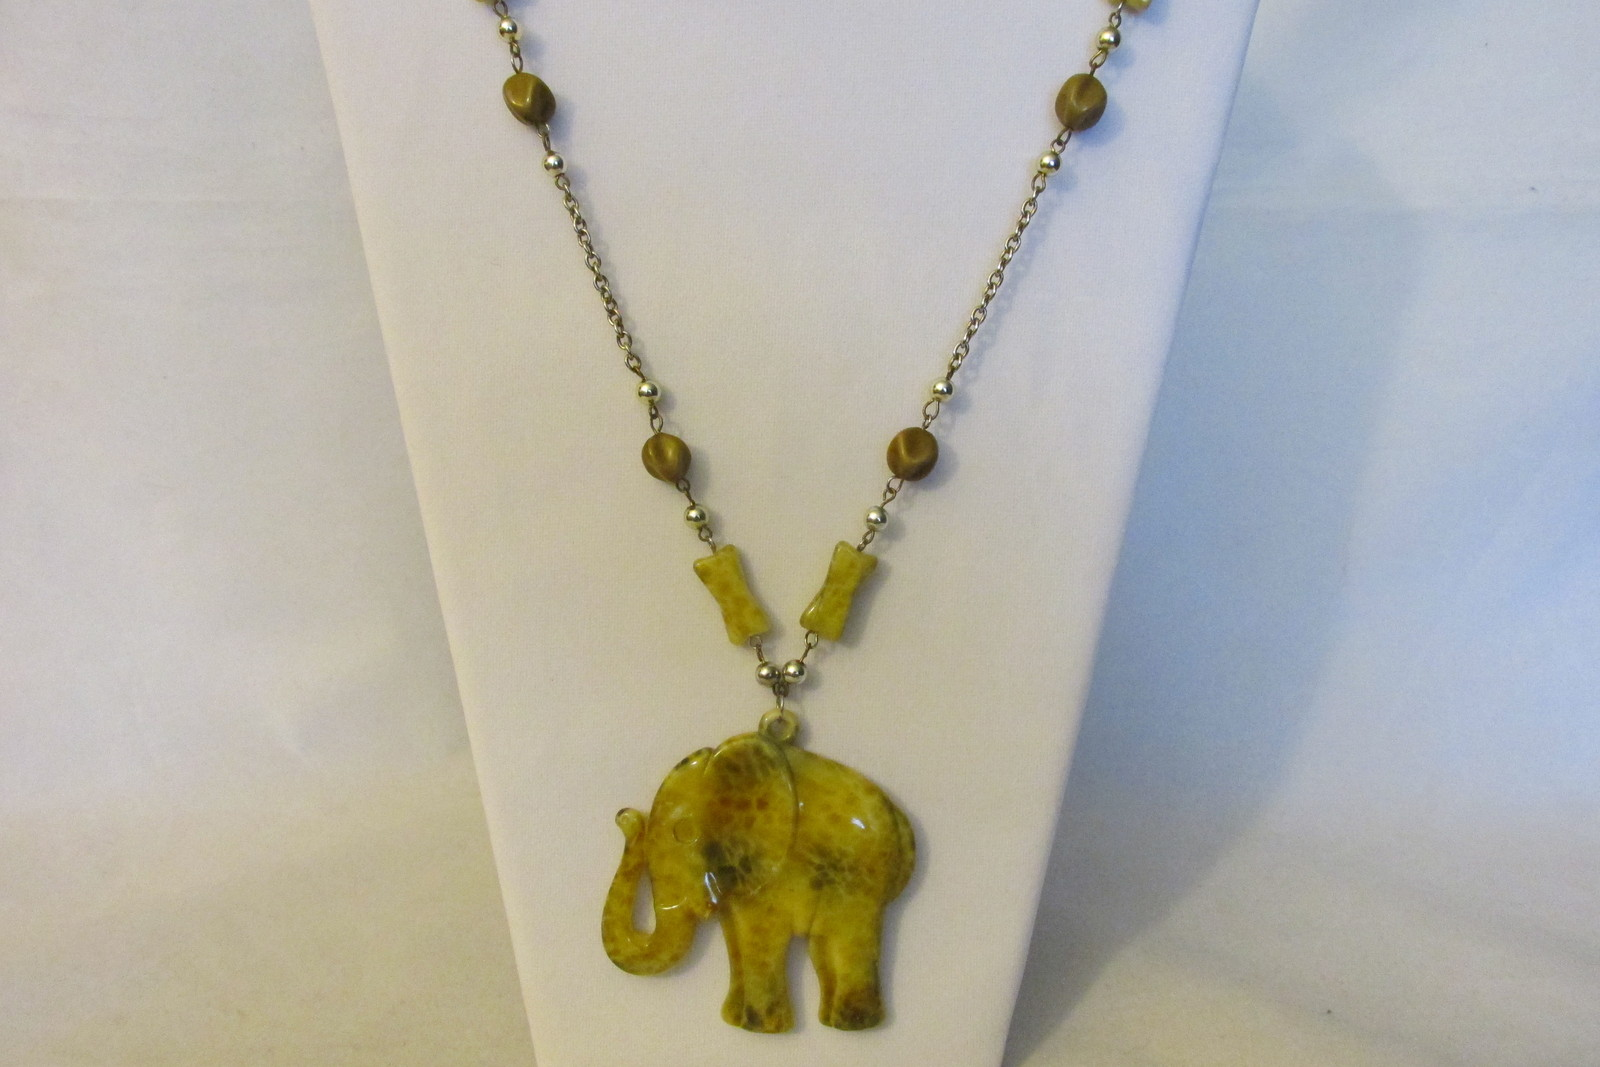 Vintage Elephant Pendant Necklace - Marbled Lucite, Silver Toned Chain, Beads